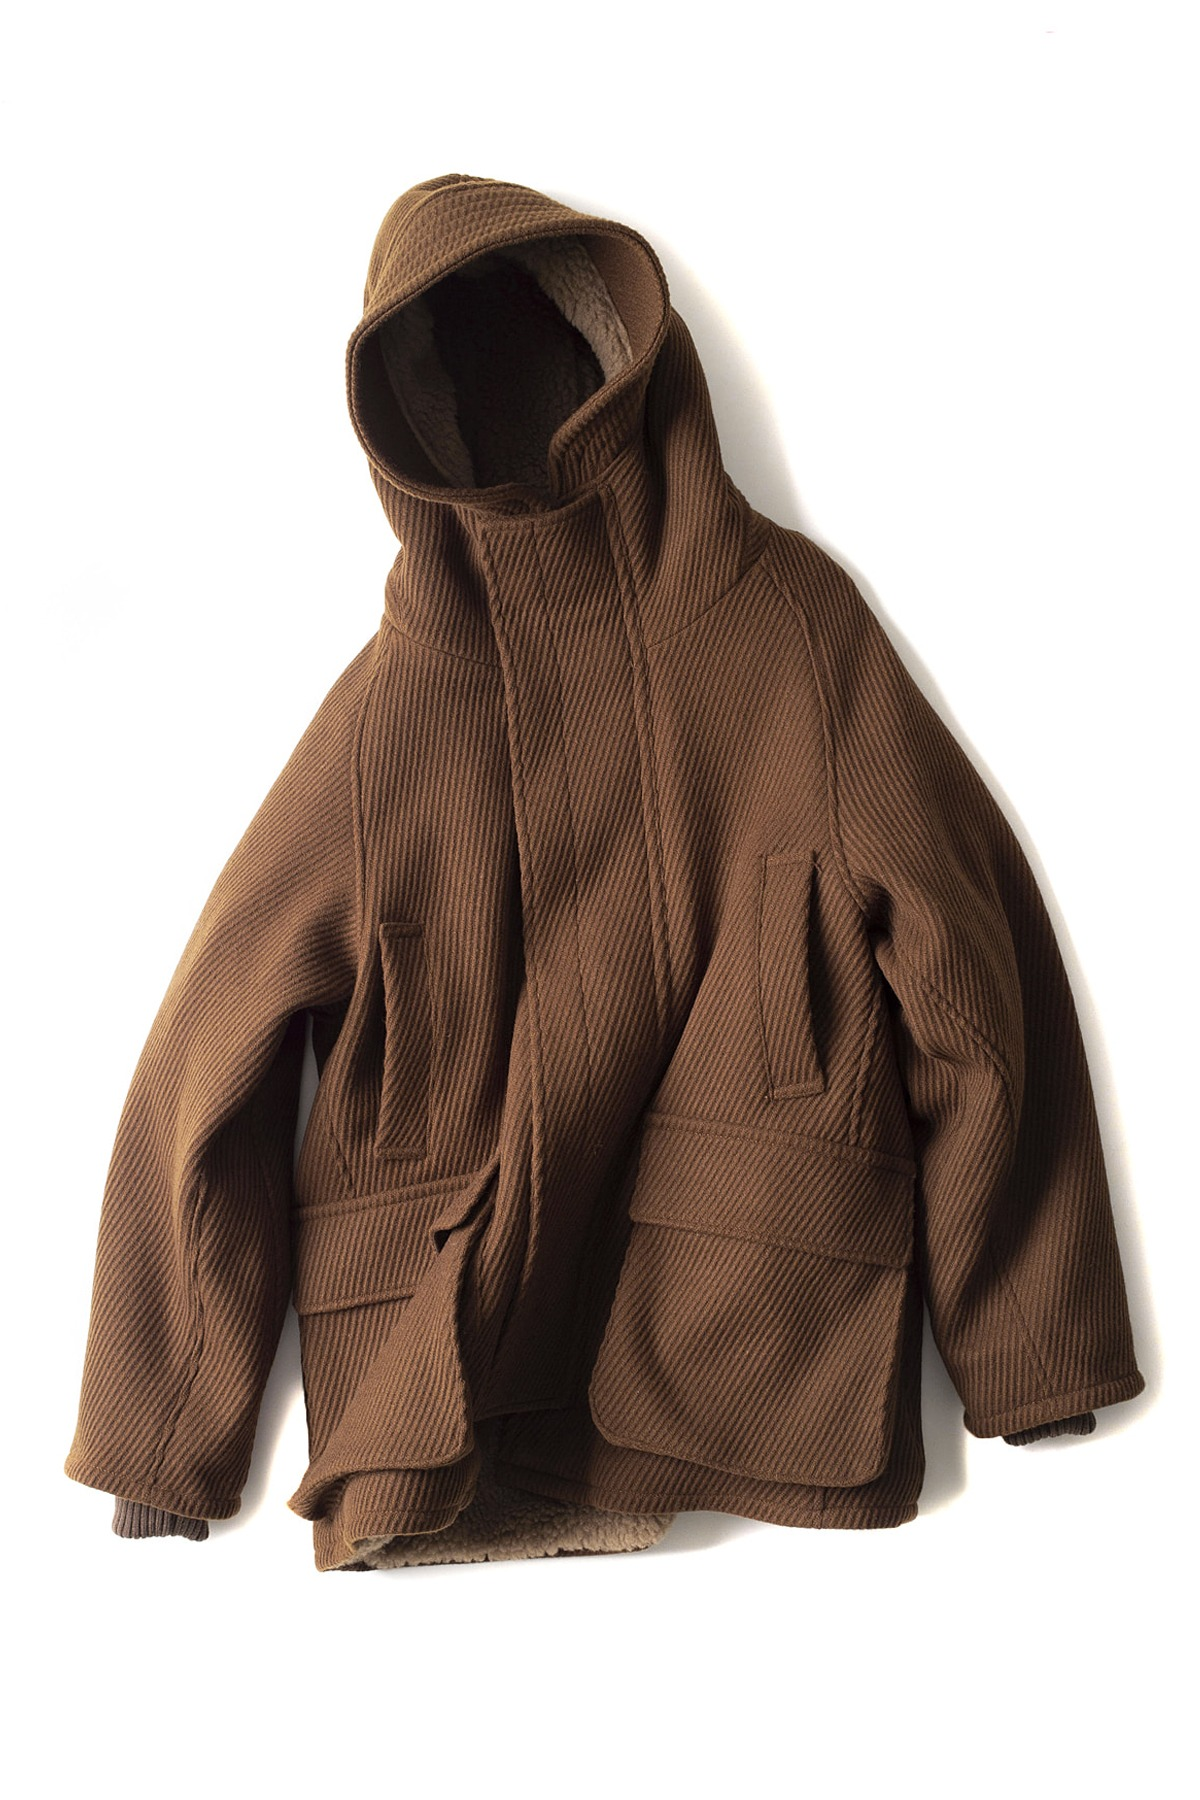 EEL : Aurora Man Coat (Brown)